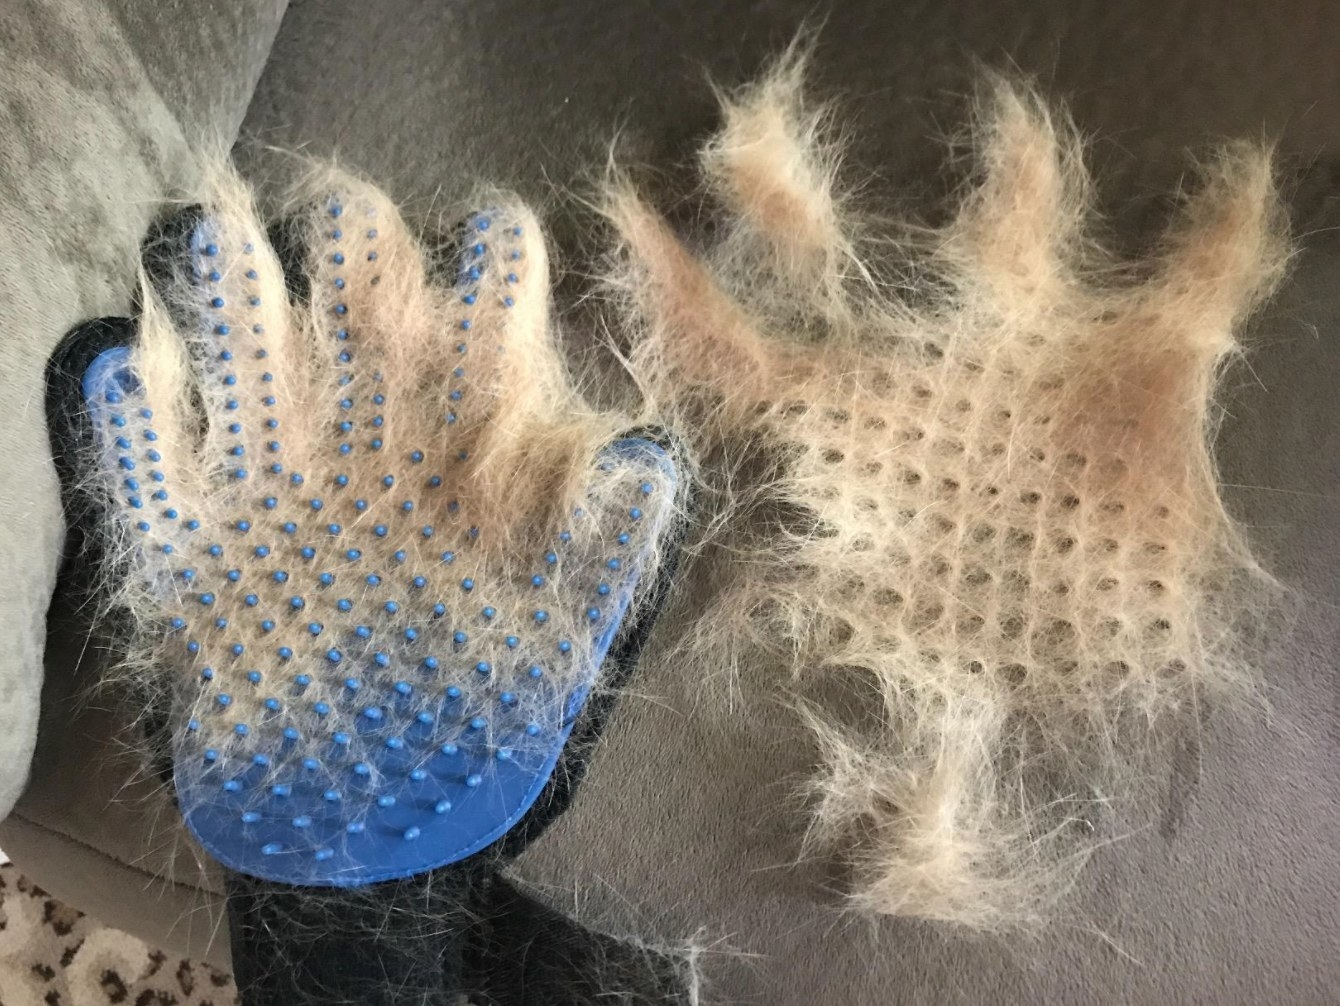 A reviewer's photo of the set of cat deshedding gloves in blue